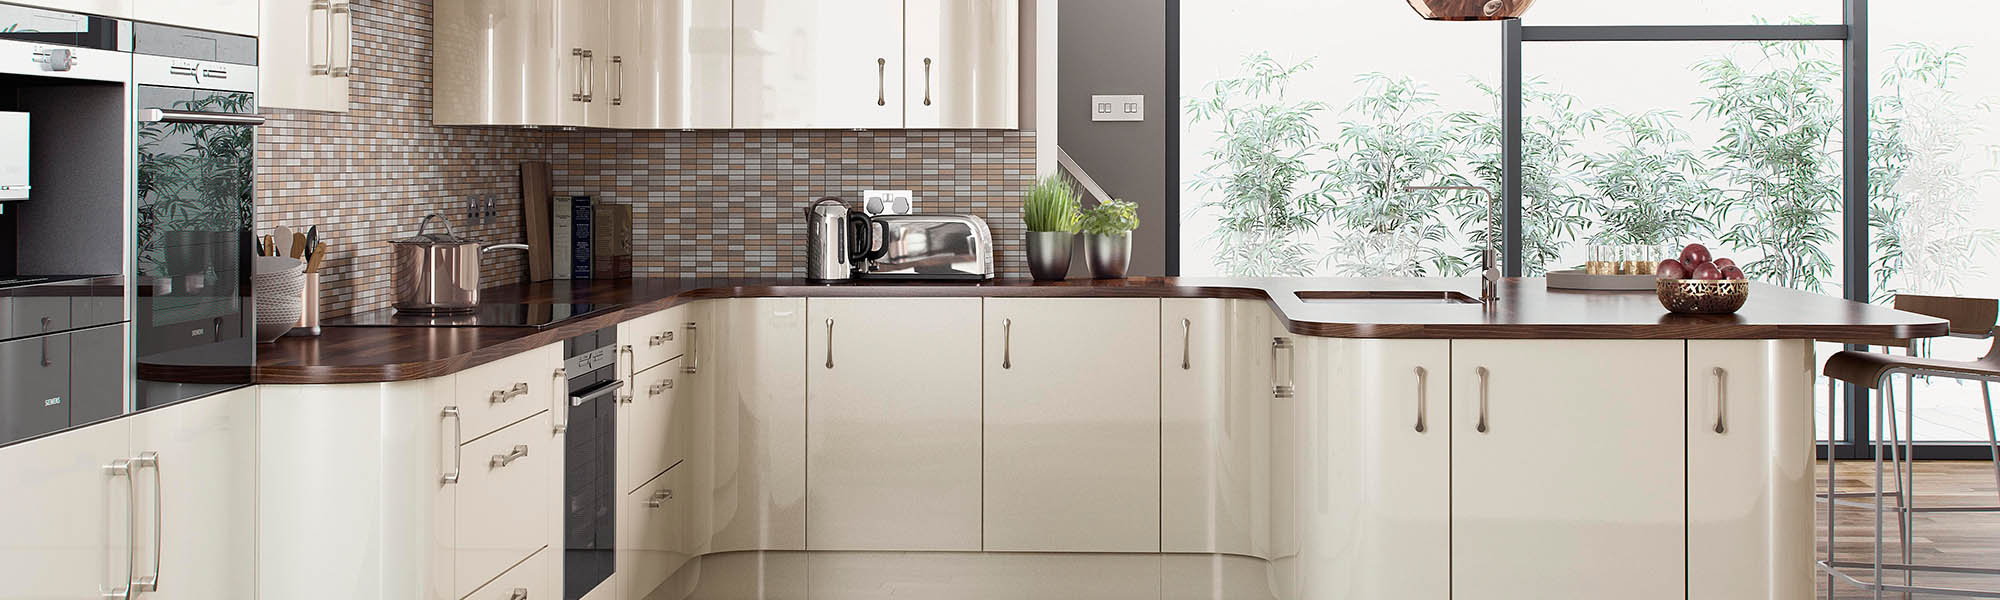 Abbey kitchens and bathrooms - Designer Kitchens Nottingham